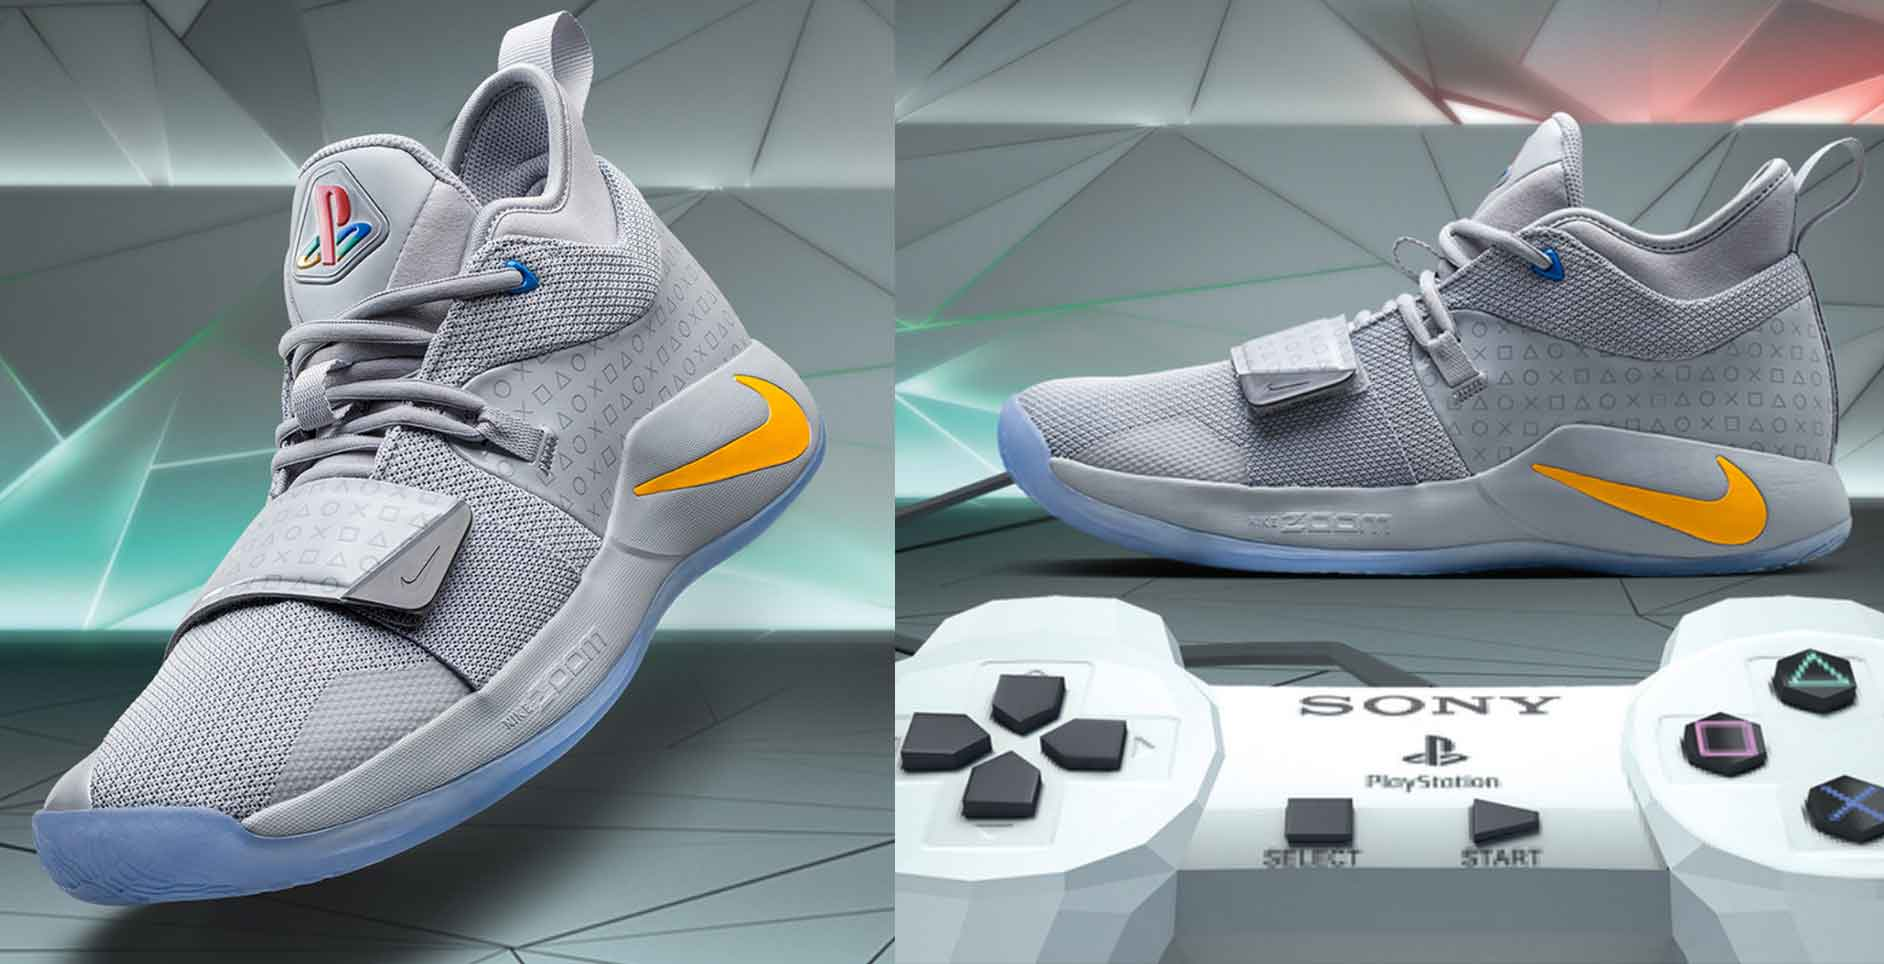 af8070c12593 PlayStation Collaborates with Nike for PG 2.5 x PlayStation Colorway ...